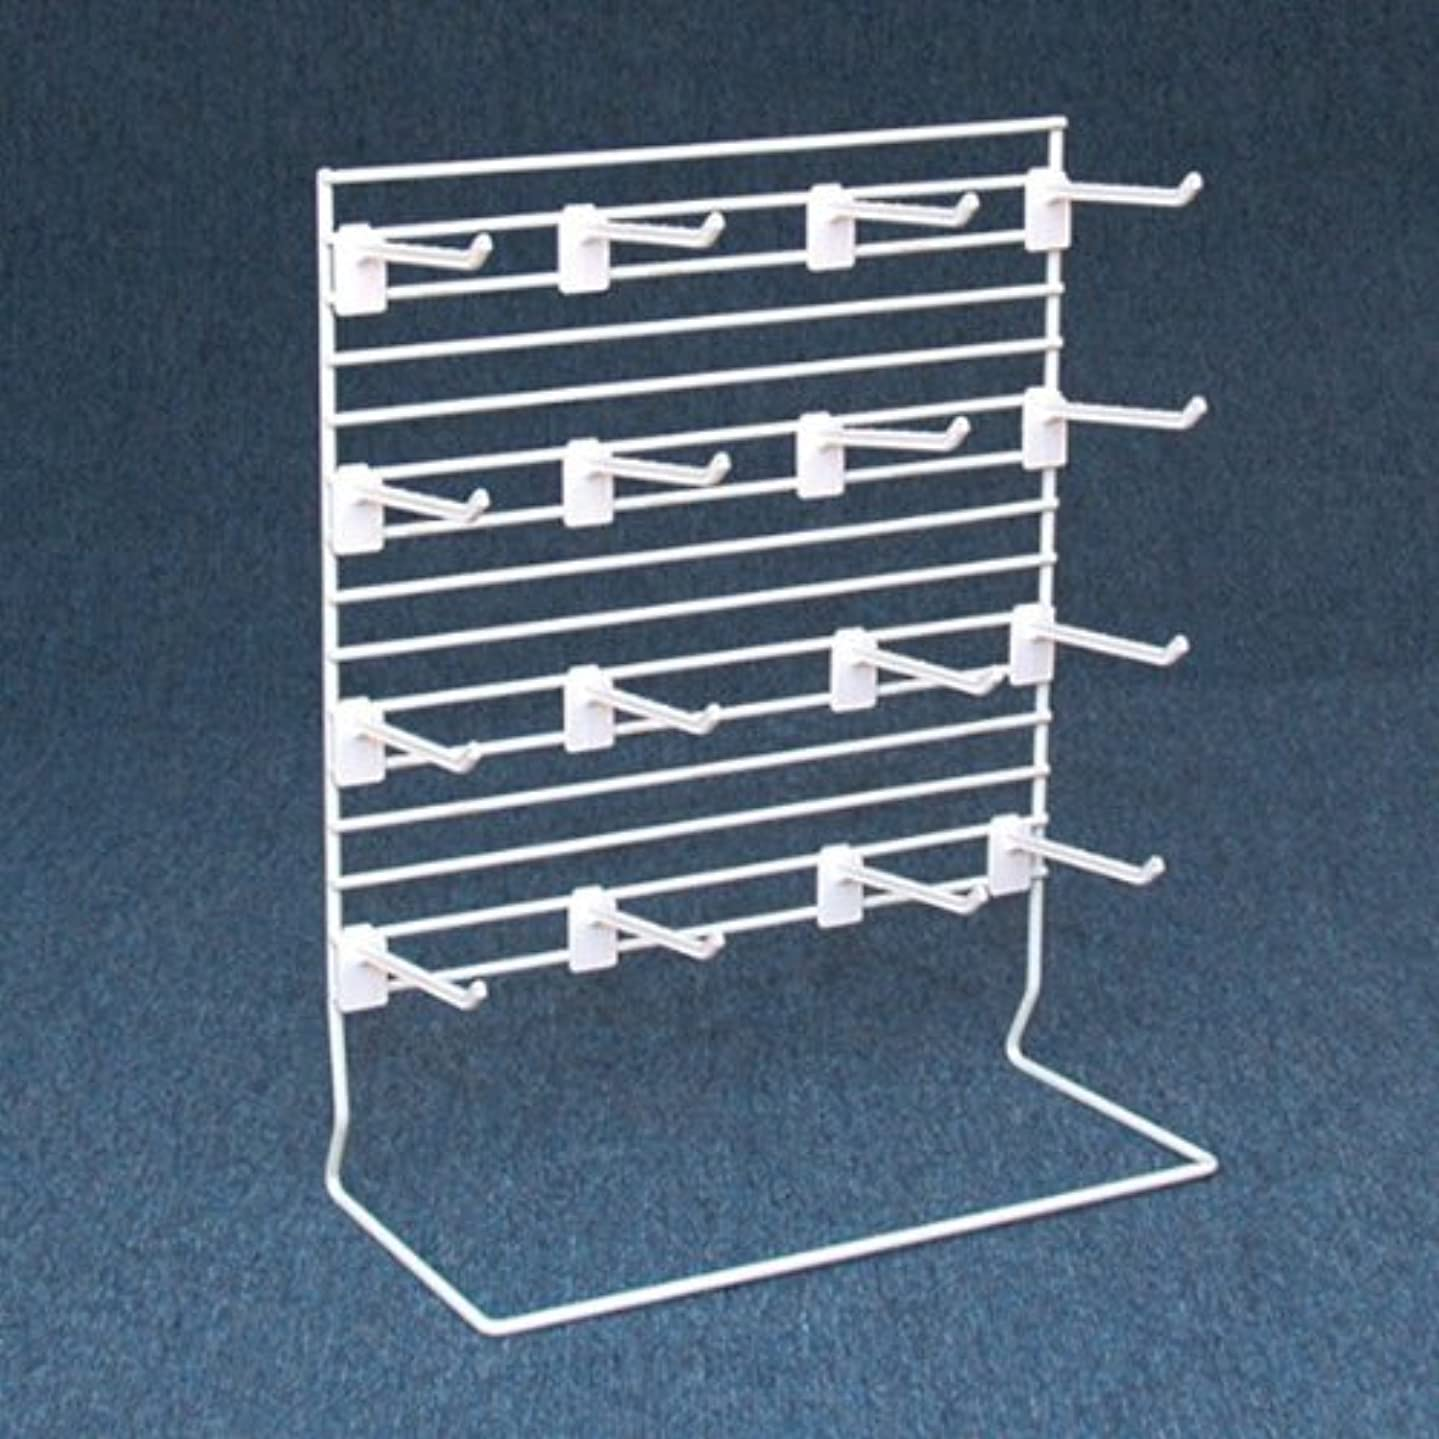 Countertop Grid Merchandise Display Rack with 12 Hooks - Craft Room Organizer, Vendor Booths, Ecommerce or Retail